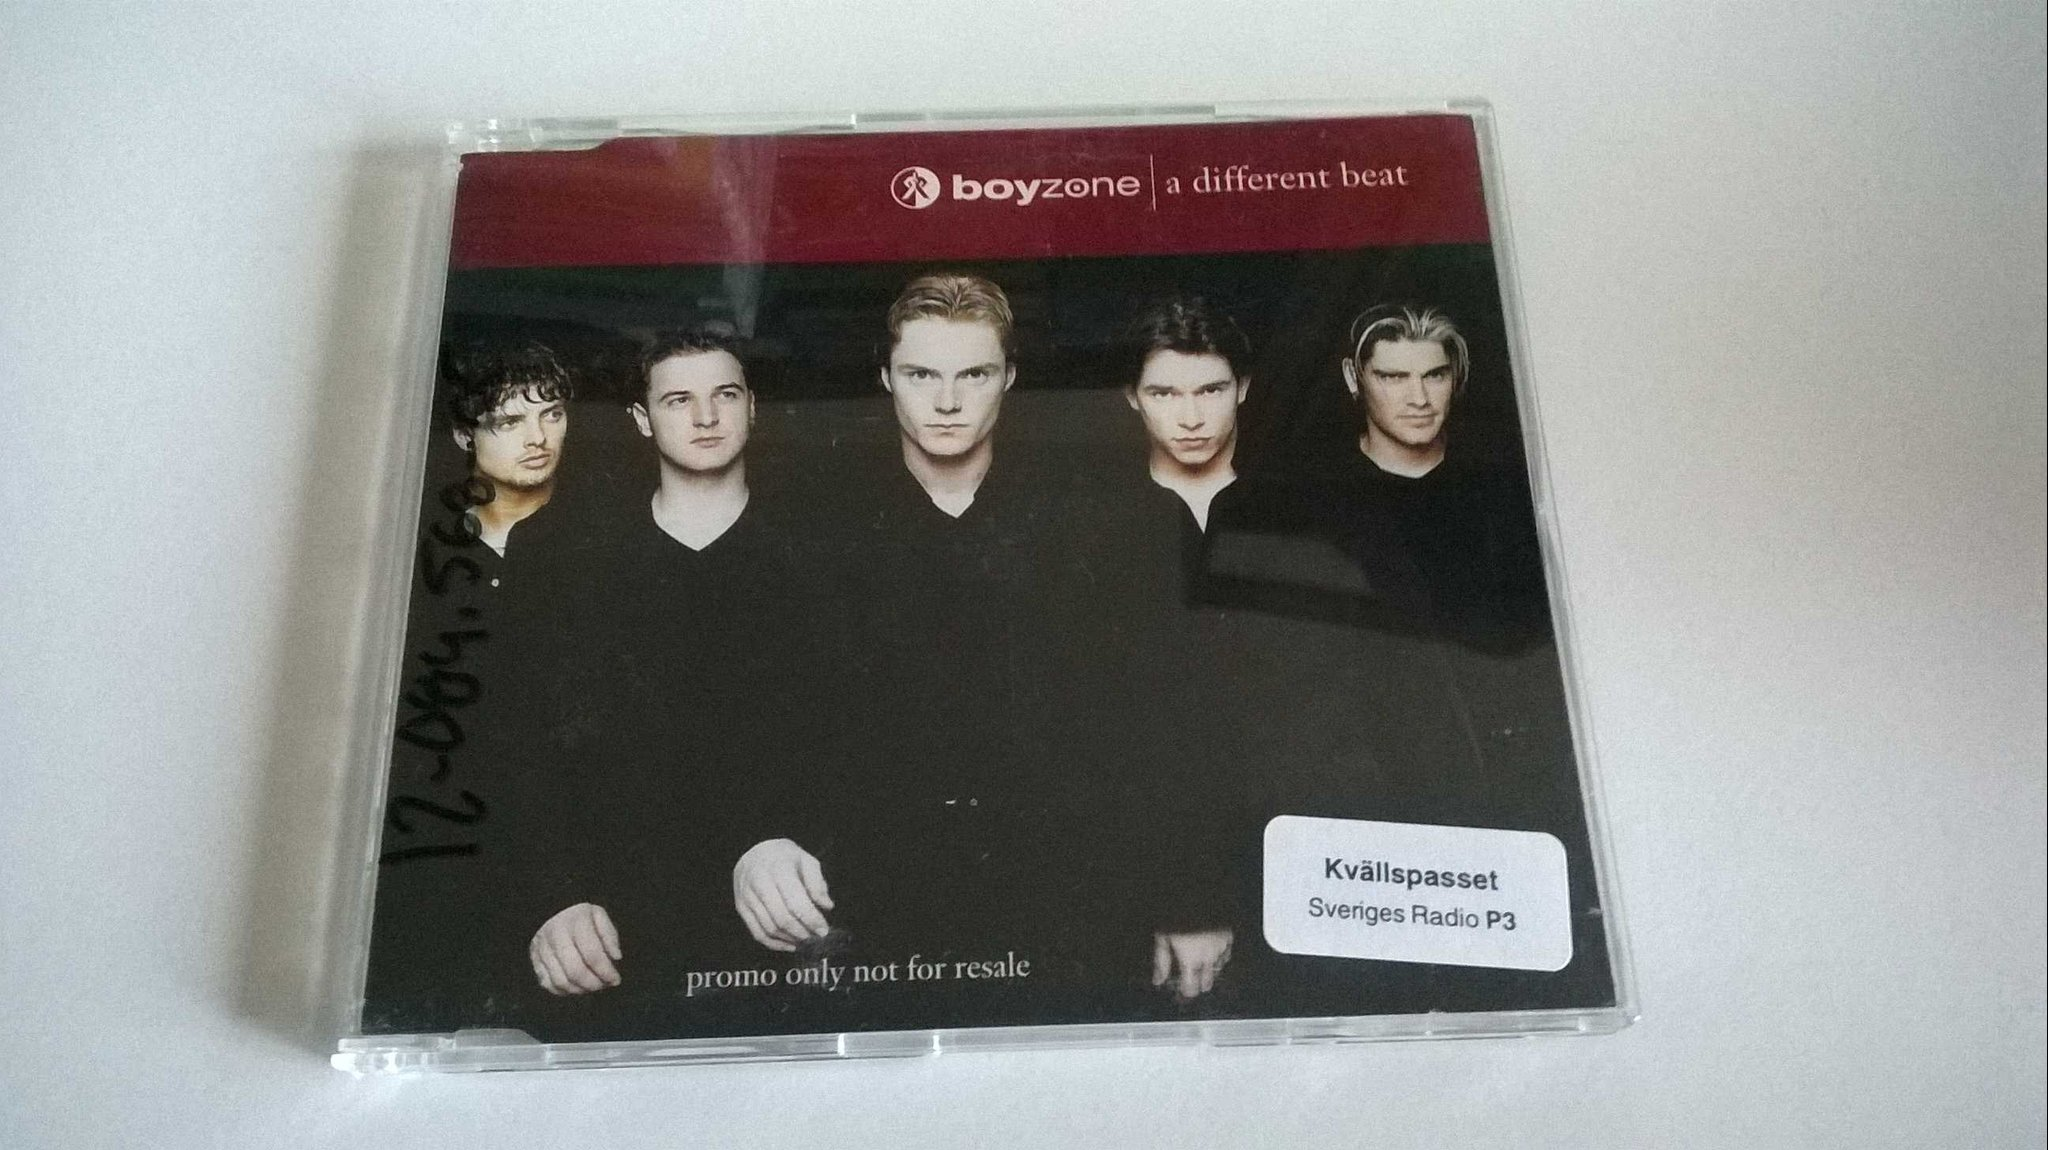 Boyzone - A Different Beat, CD